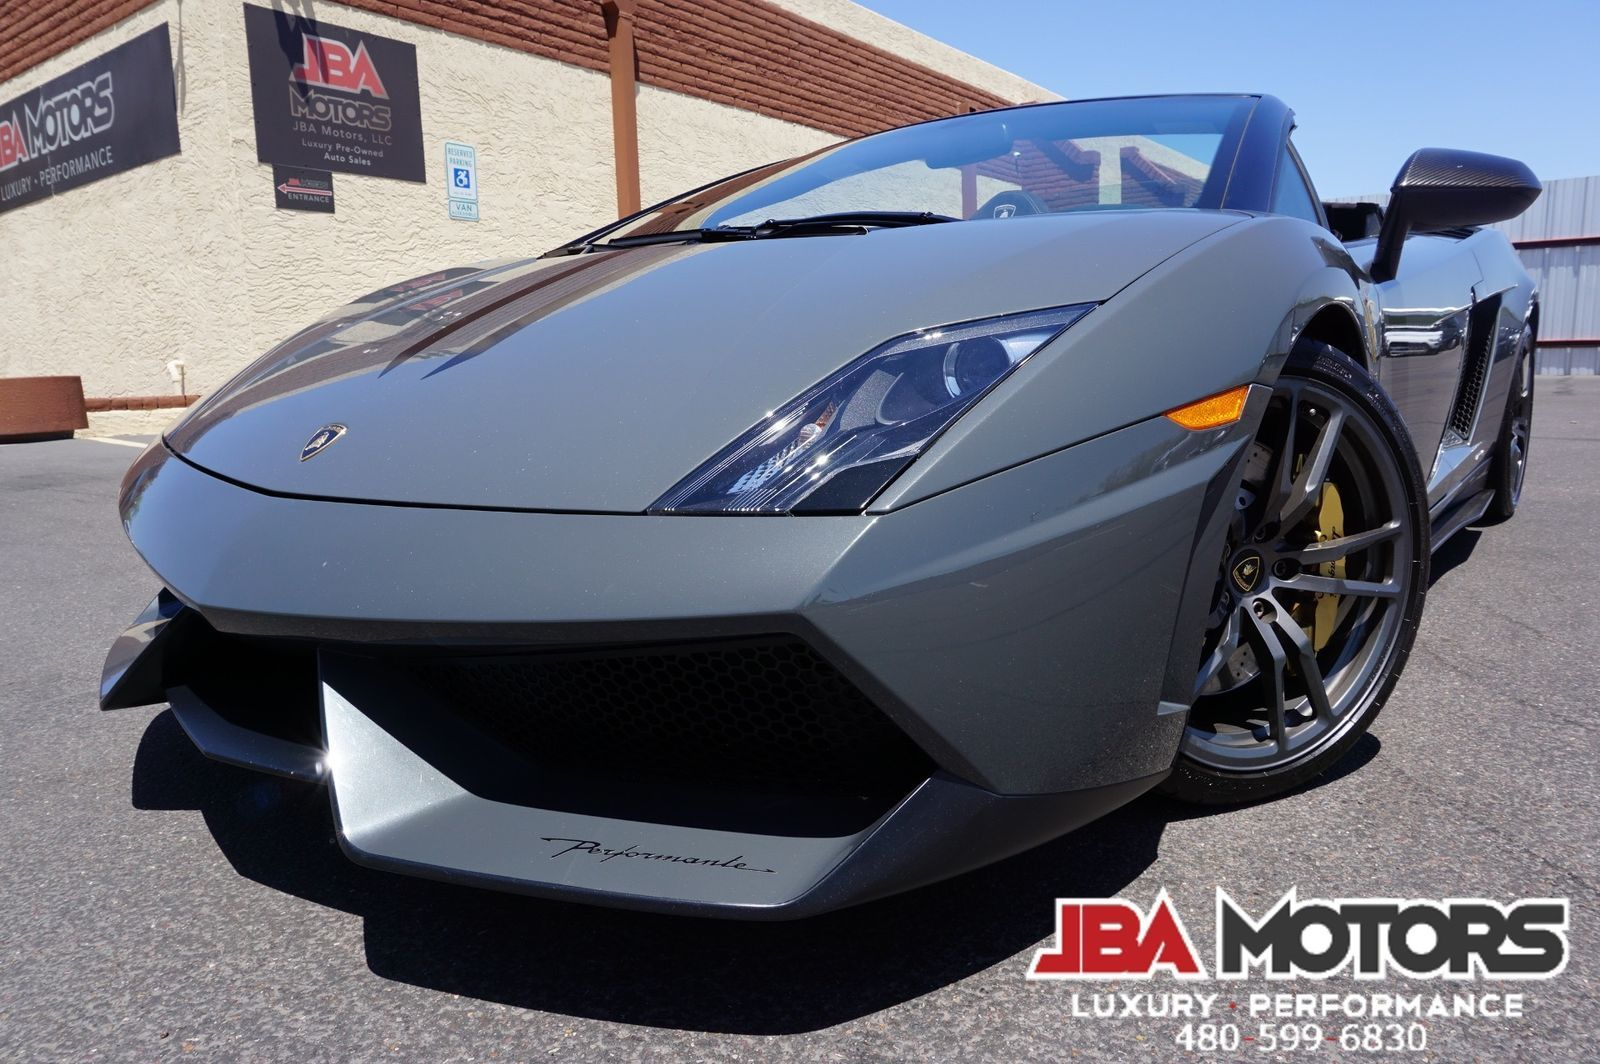 Amazing Lamborghini Gallardo 2012 Gallardo Performante Lp570